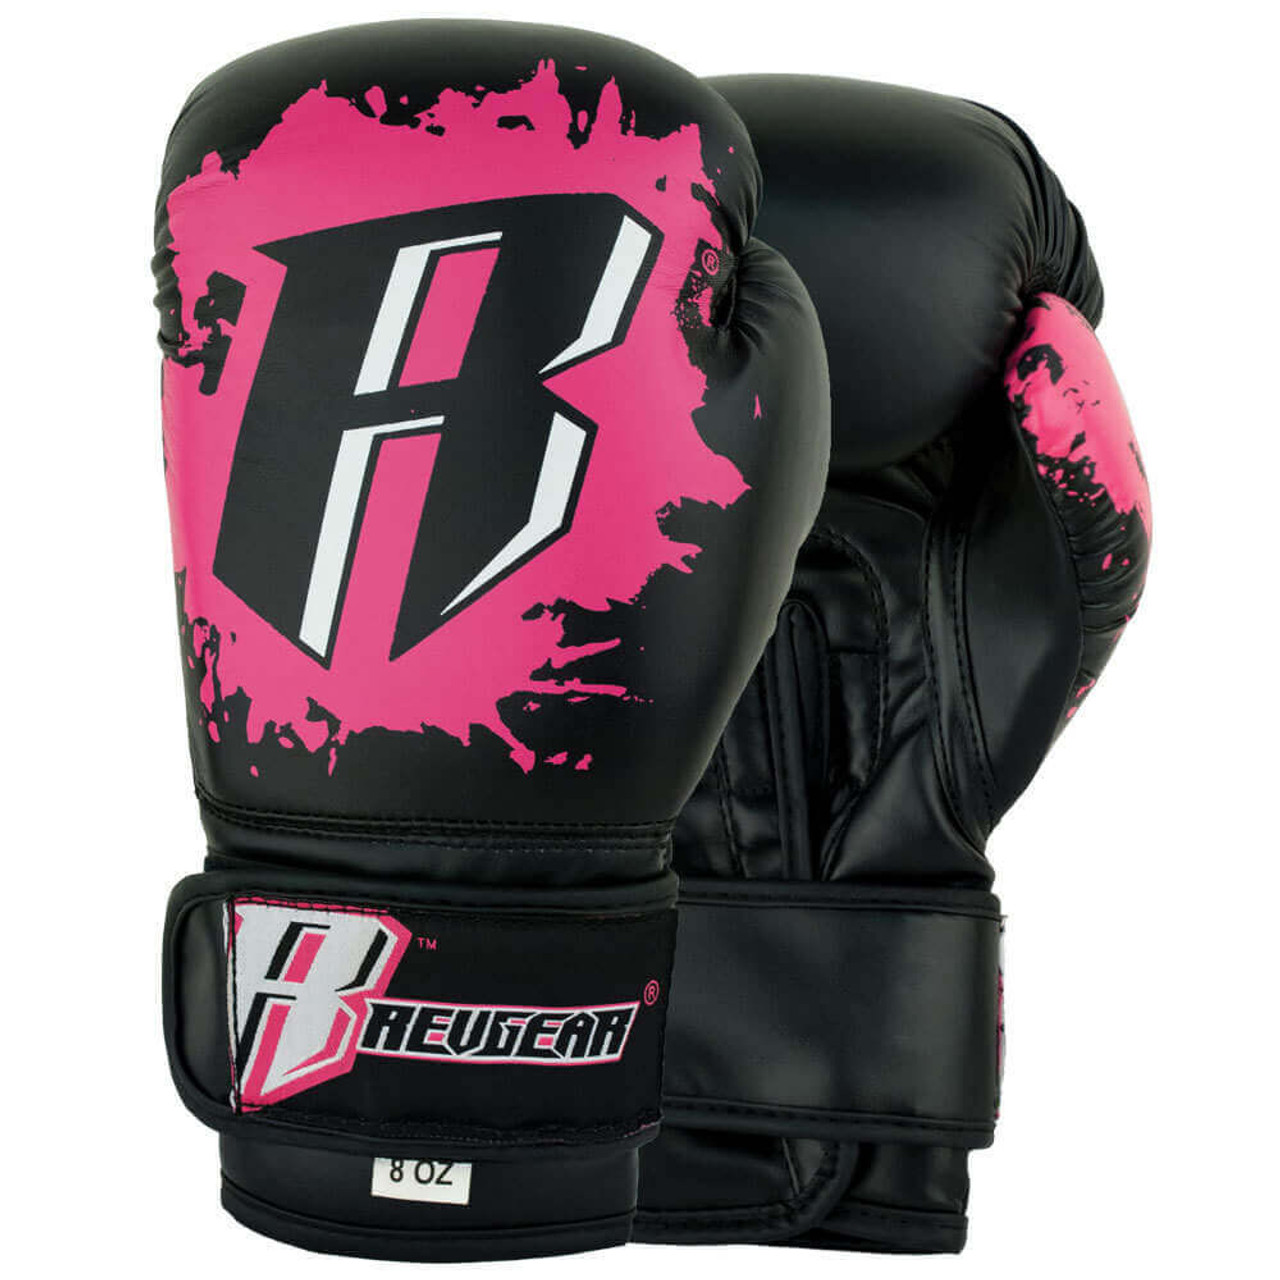 Youth Deluxe Boxing Gloves - Pink